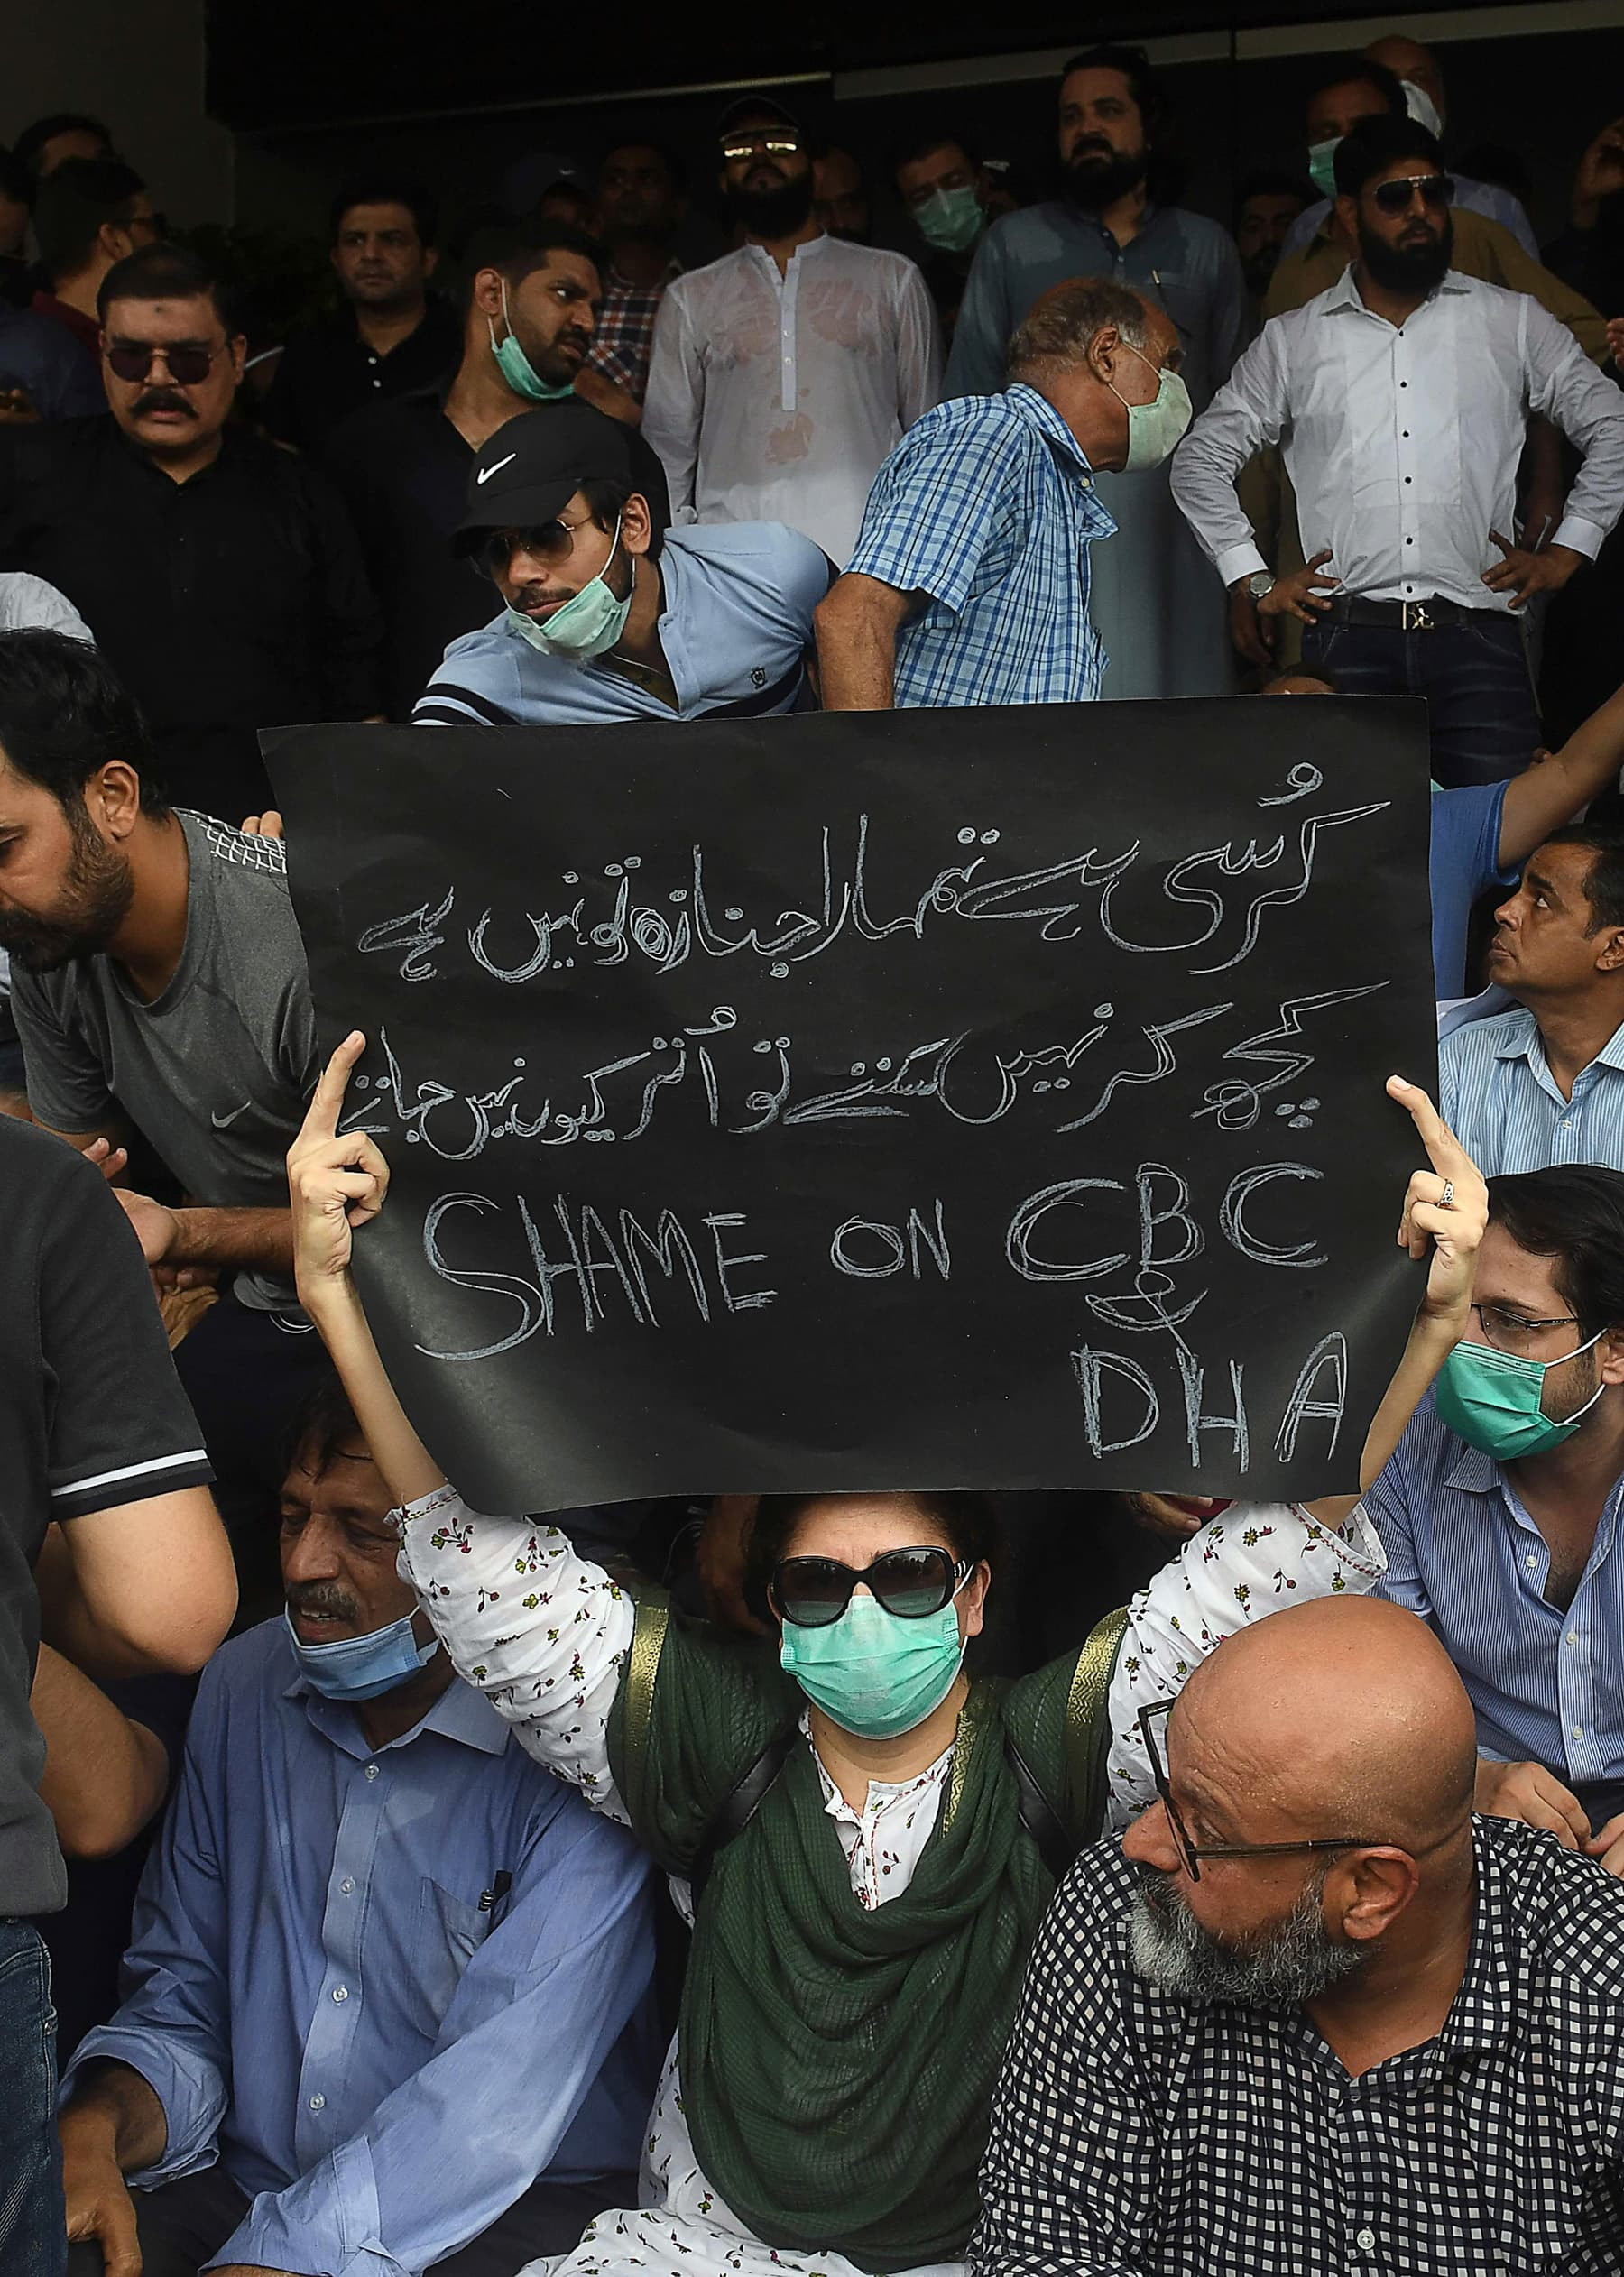 Angry residents of DHA chant slogans as they gather outside the CBC office to protest on Monday. — AFP